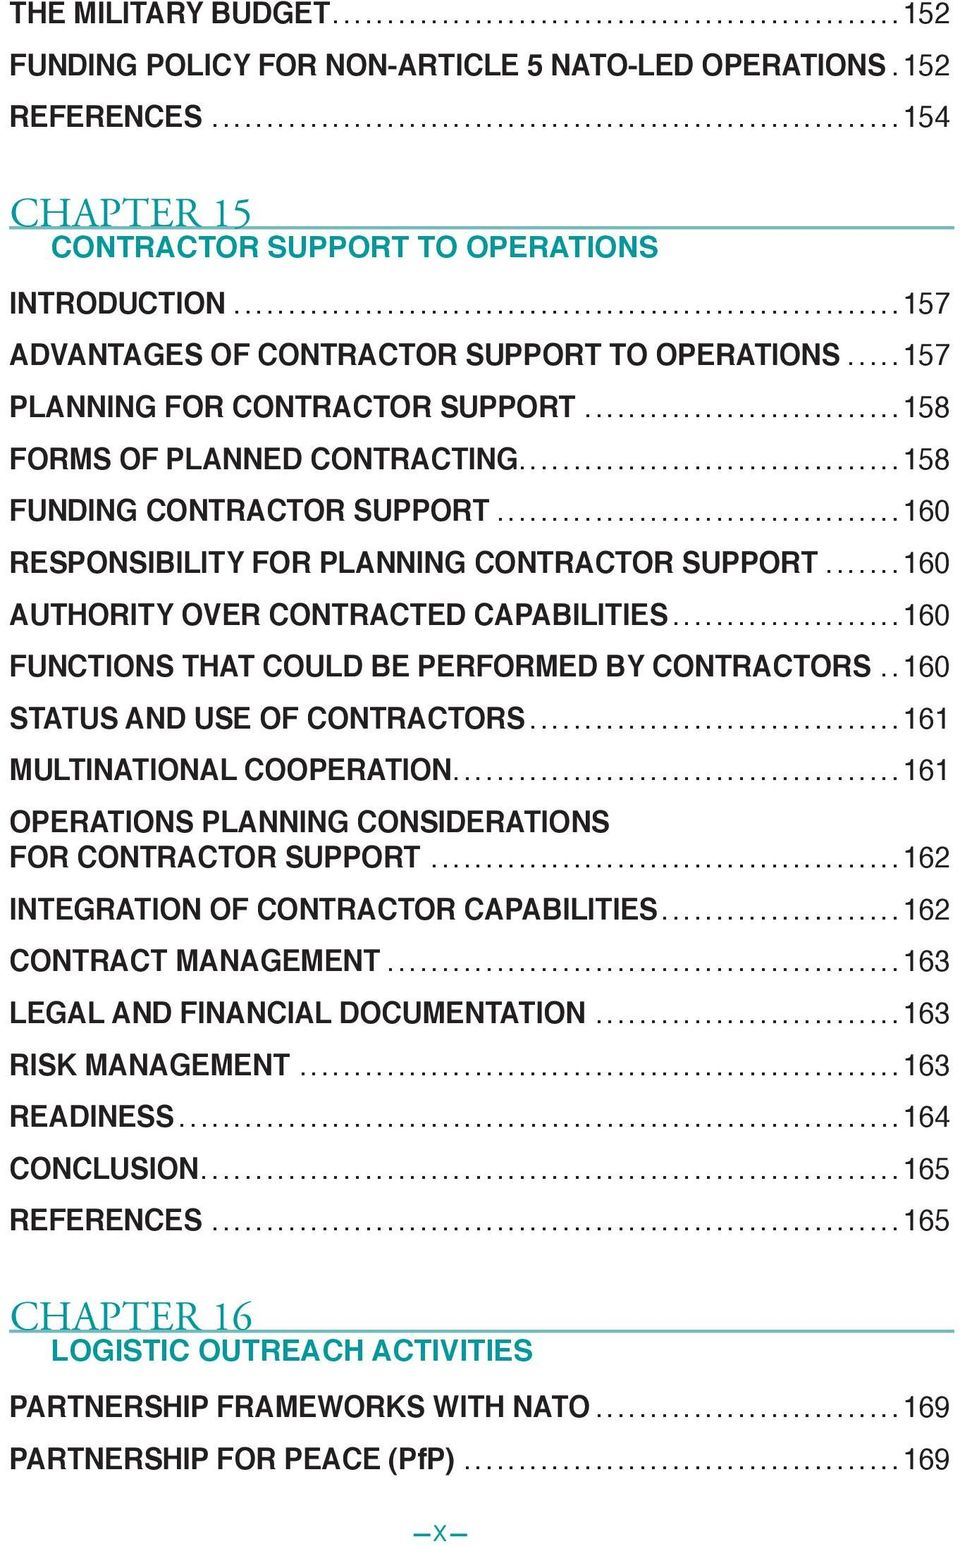 ..160 RESPONSIBILITY FOR PLANNING CONTRACTOR SUPPORT...160 AUTHORITY OVER CONTRACTED CAPABILITIES...160 FUNCTIONS THAT COULD BE PERFORMED BY CONTRACTORS..160 STATUS AND USE OF CONTRACTORS.